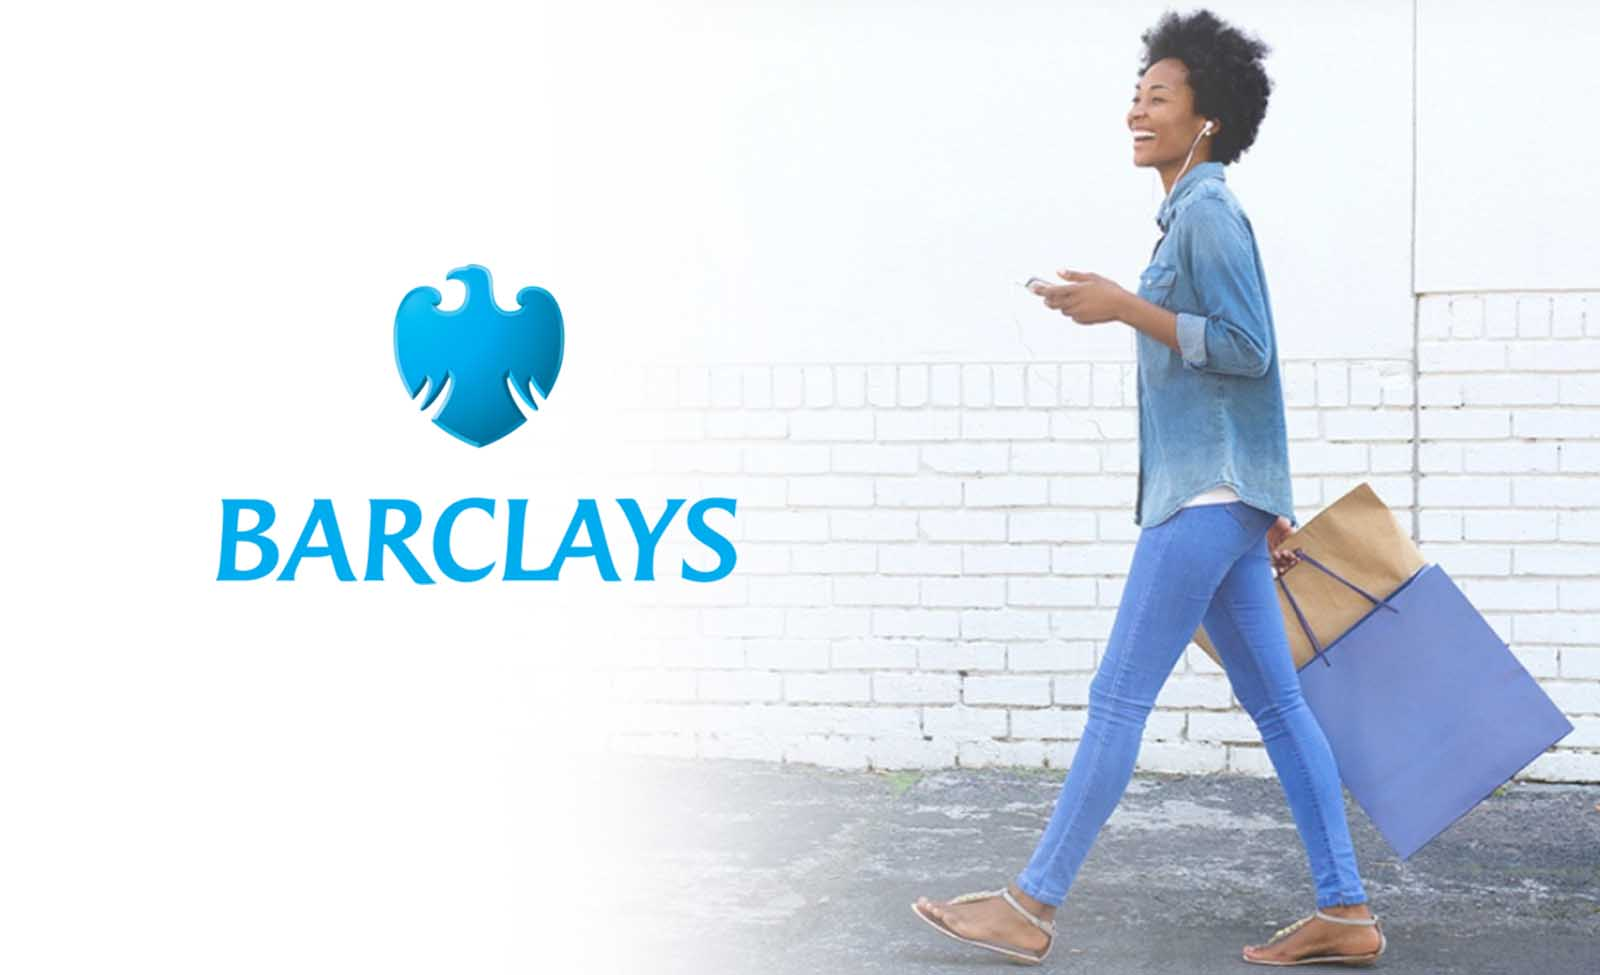 Barclays Personal Loans review: Find out how Barclays Personal Loans compares to other lenders in the market.